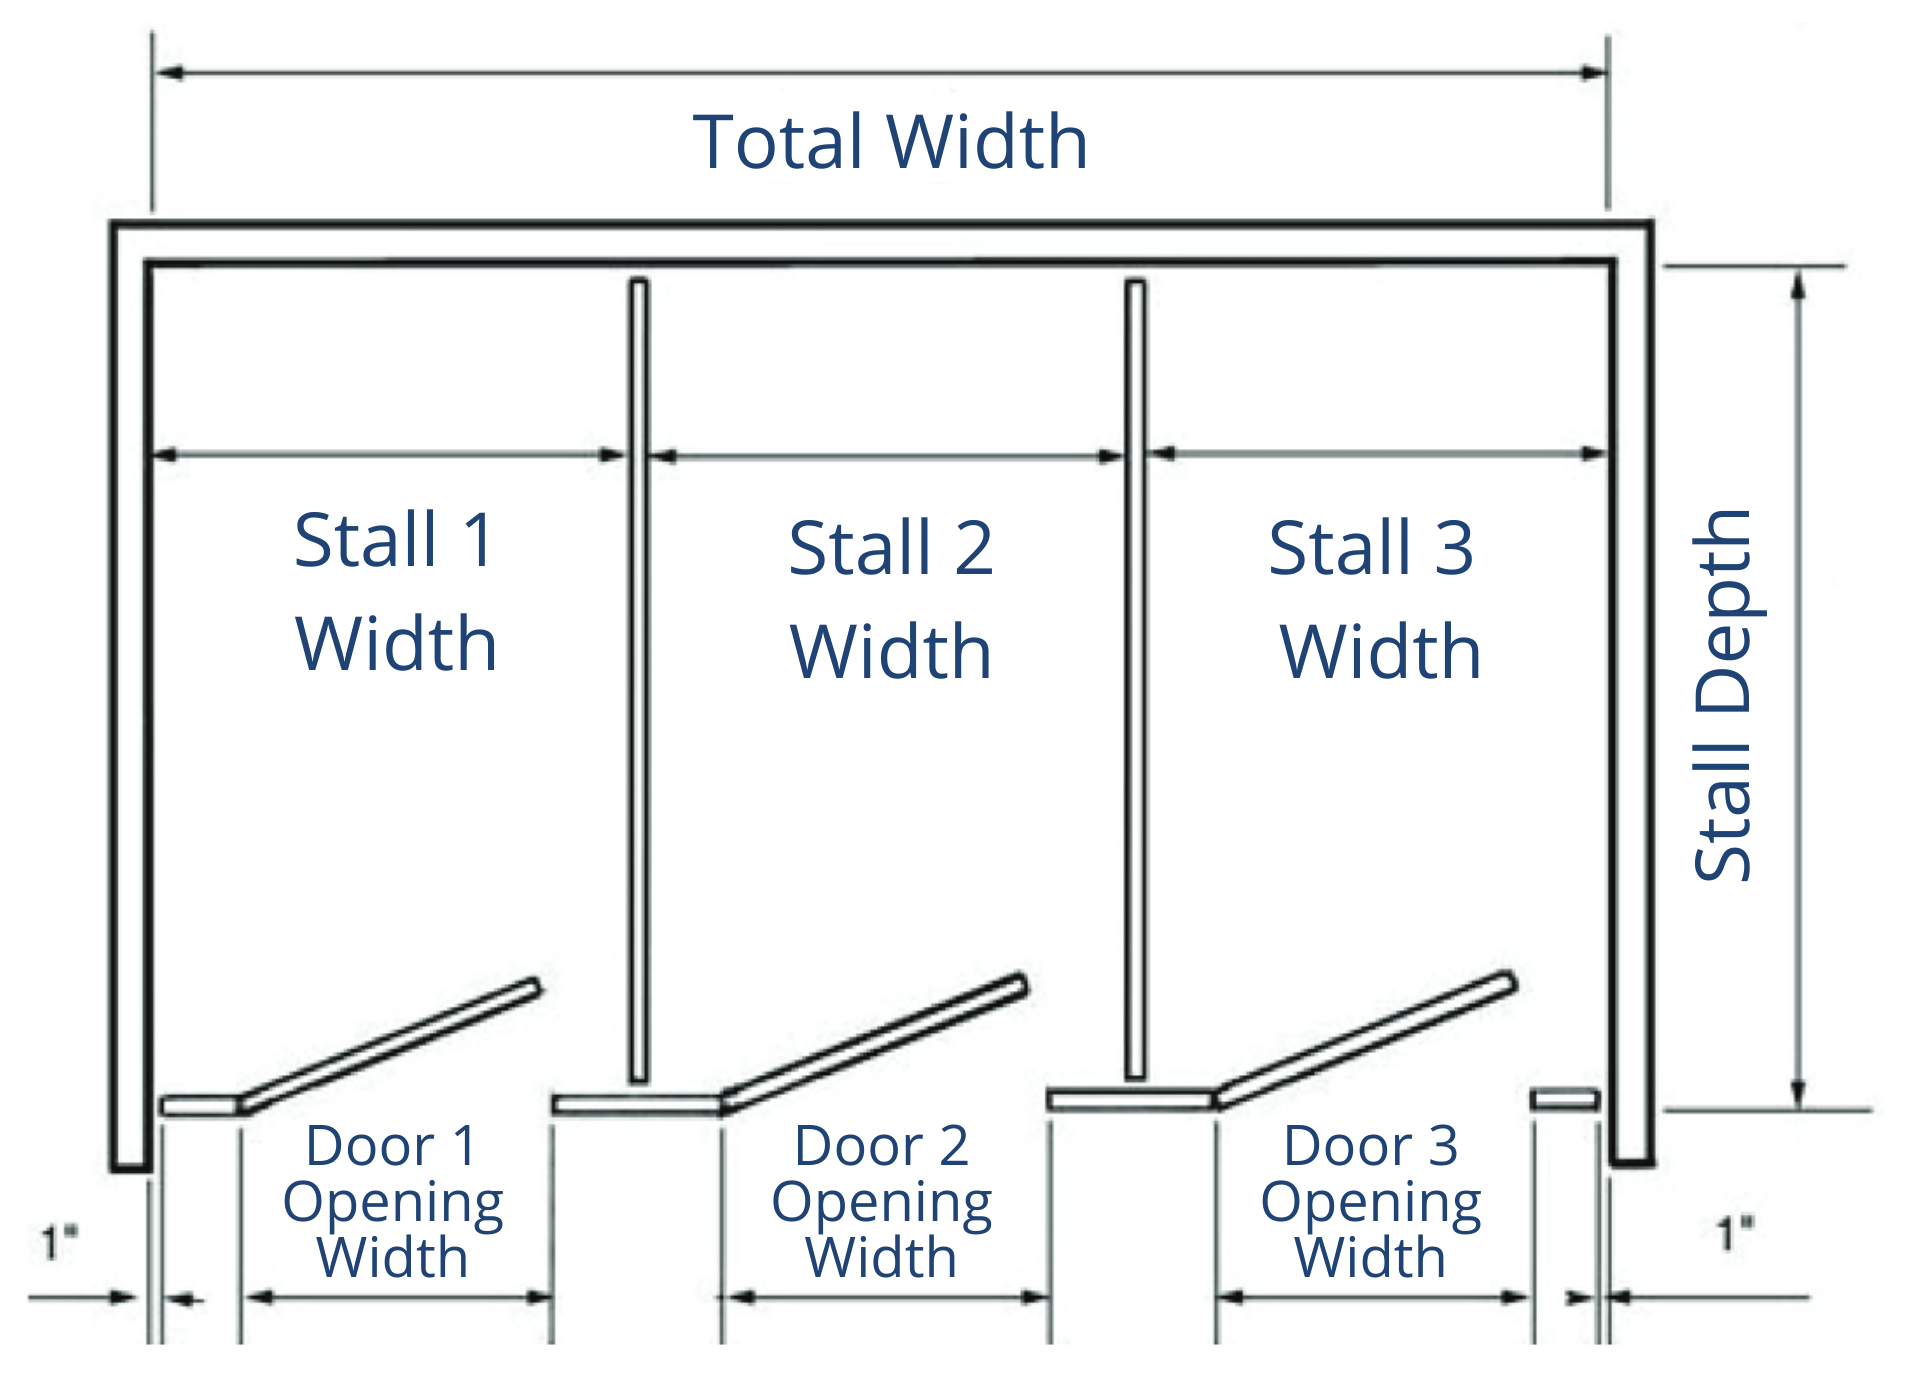 3 Stalls between 2 walls Diagram